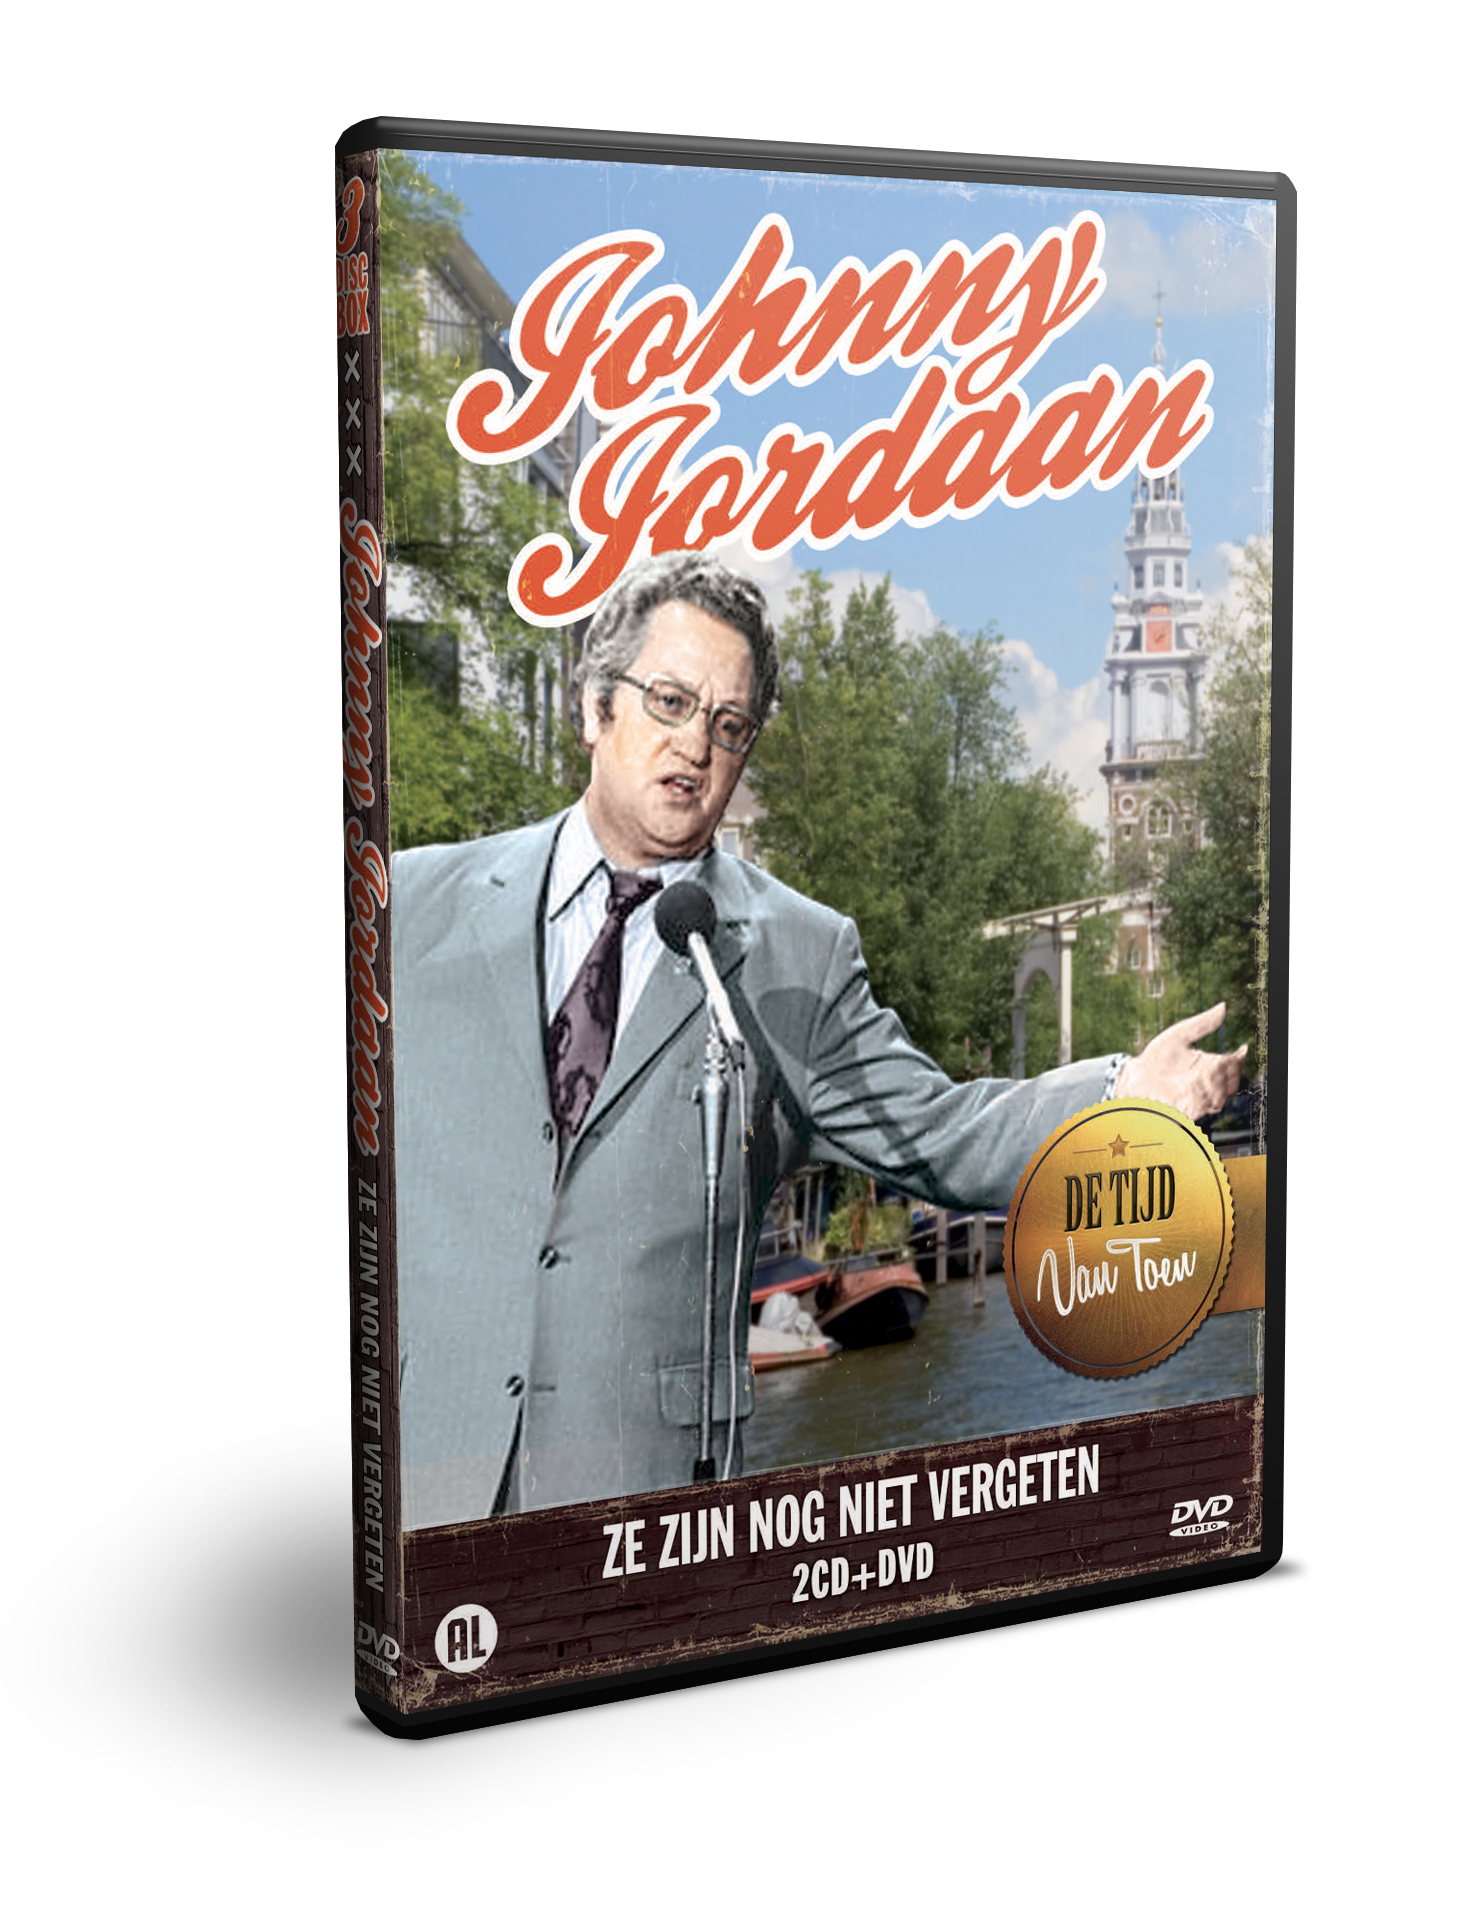 Johnny Jordaan DVD